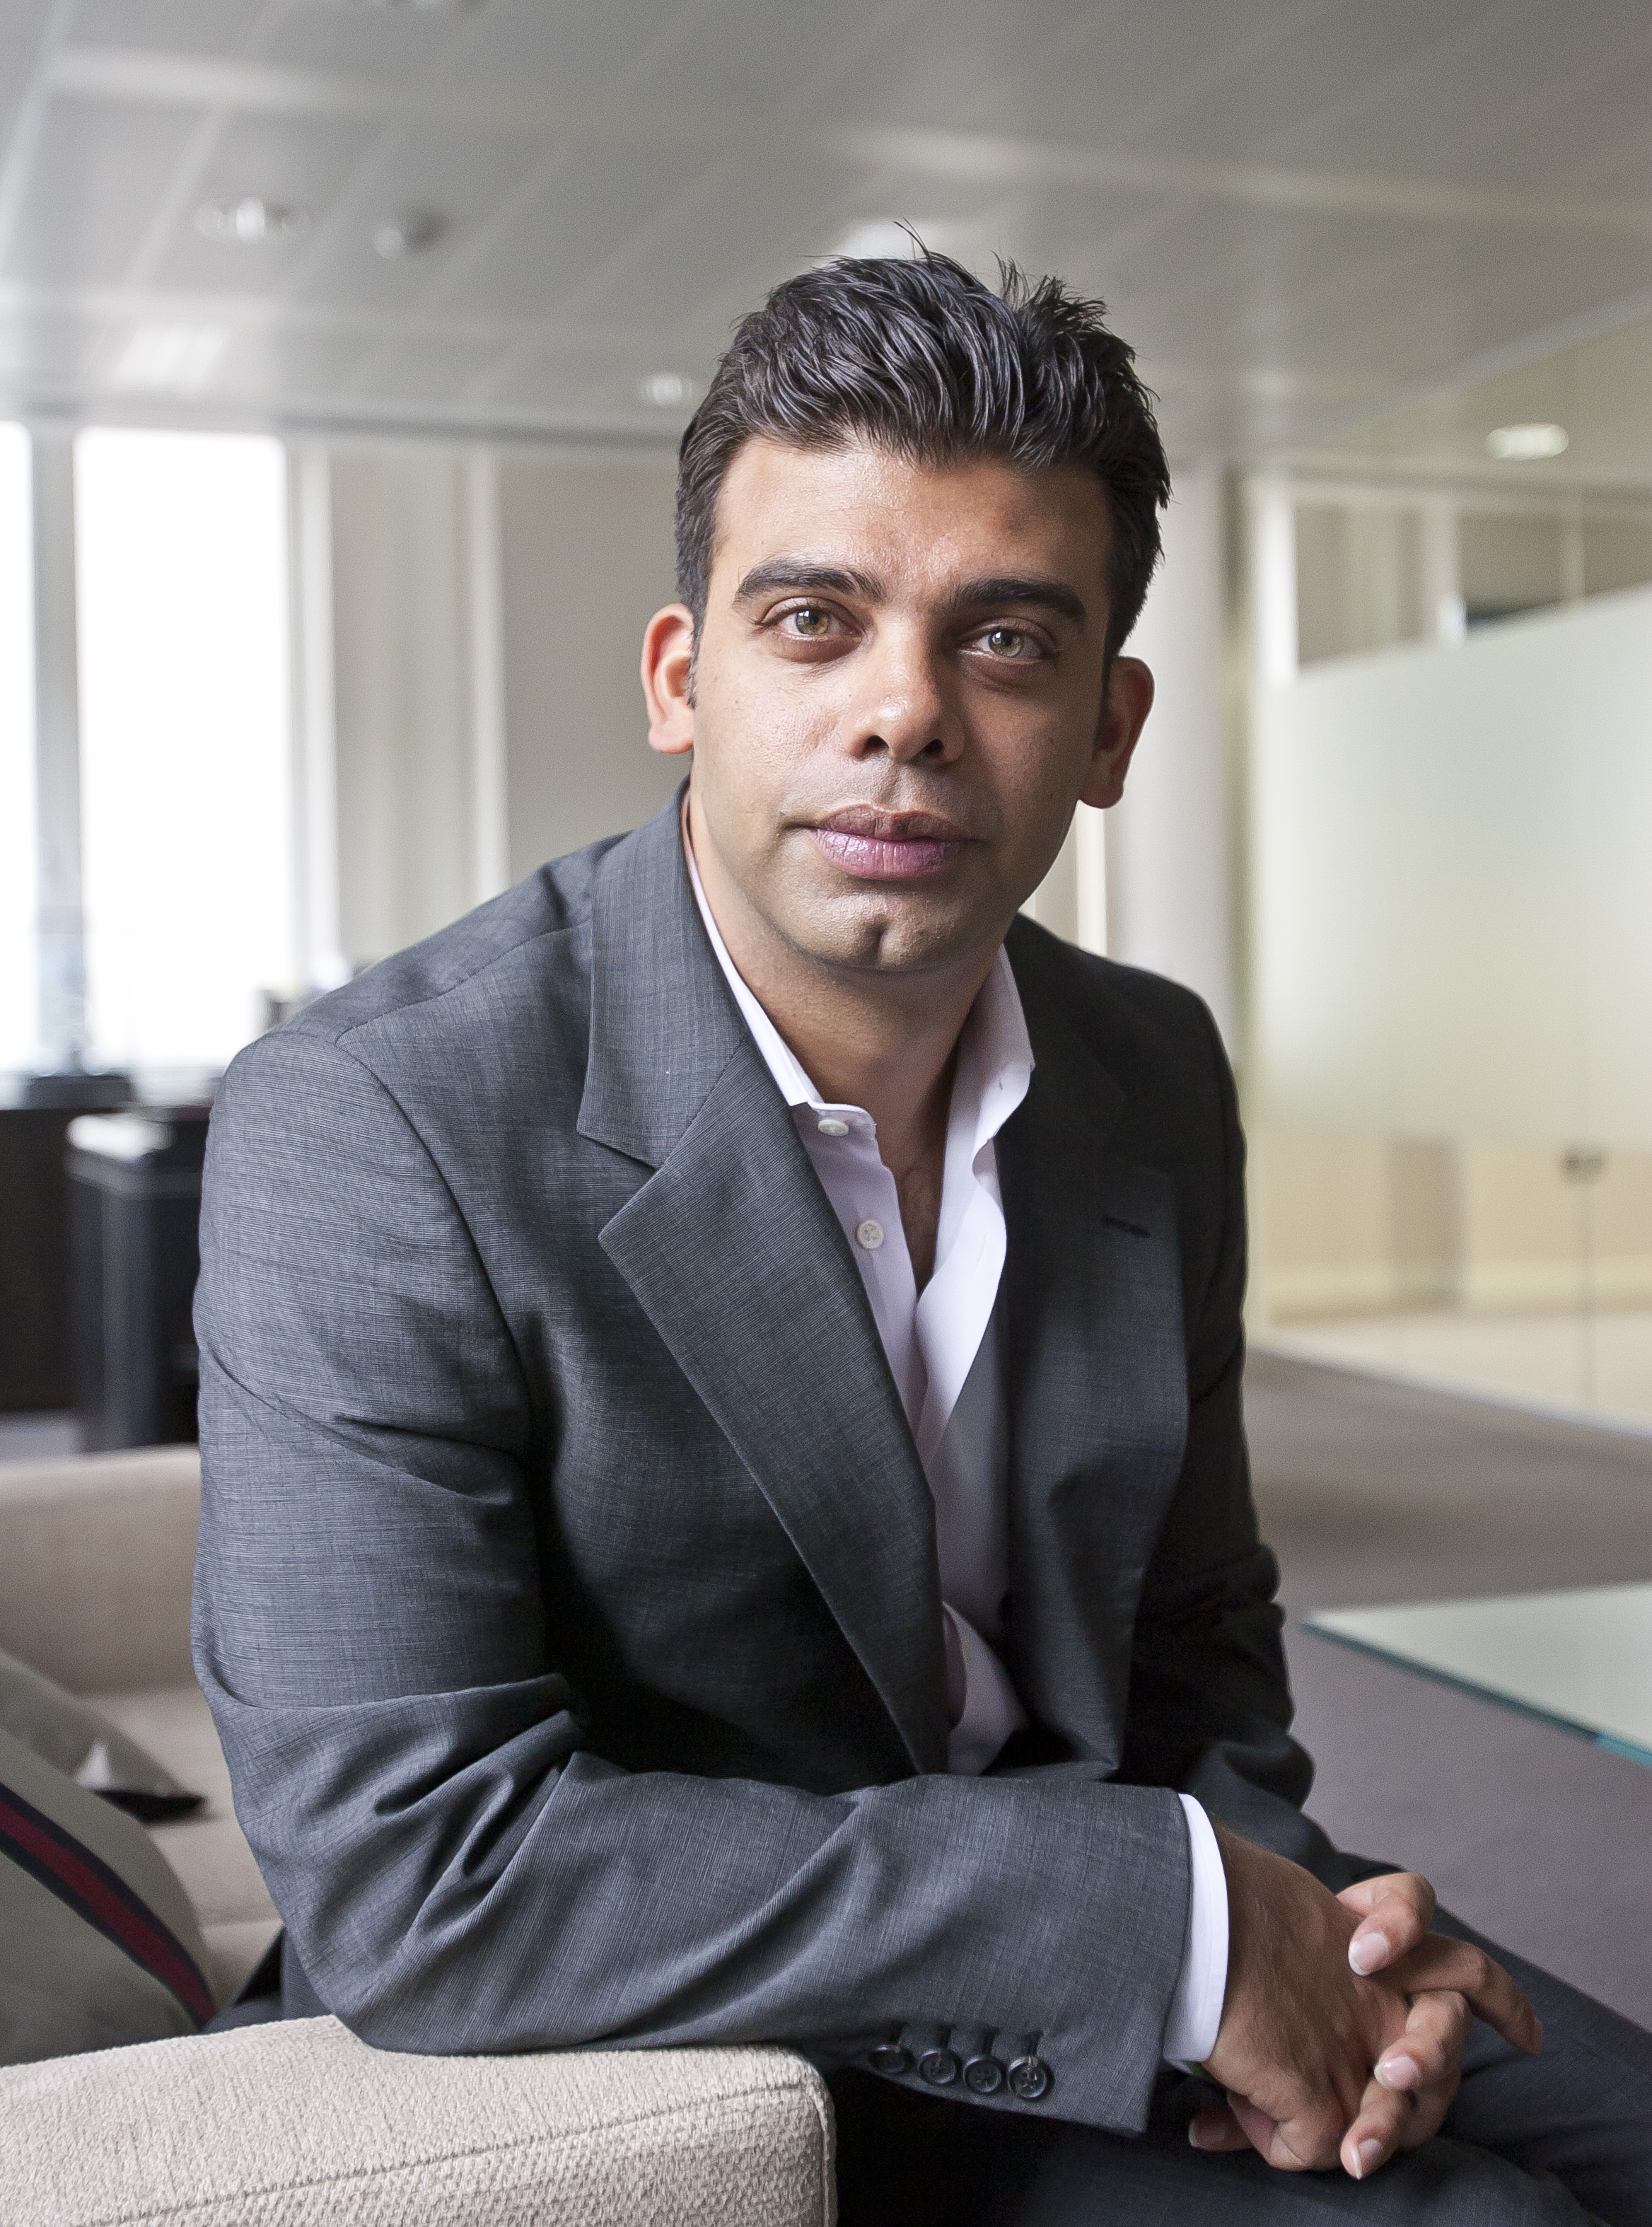 """Amit Bhatia: """"I have an immense amount of faith in the UK economy"""""""